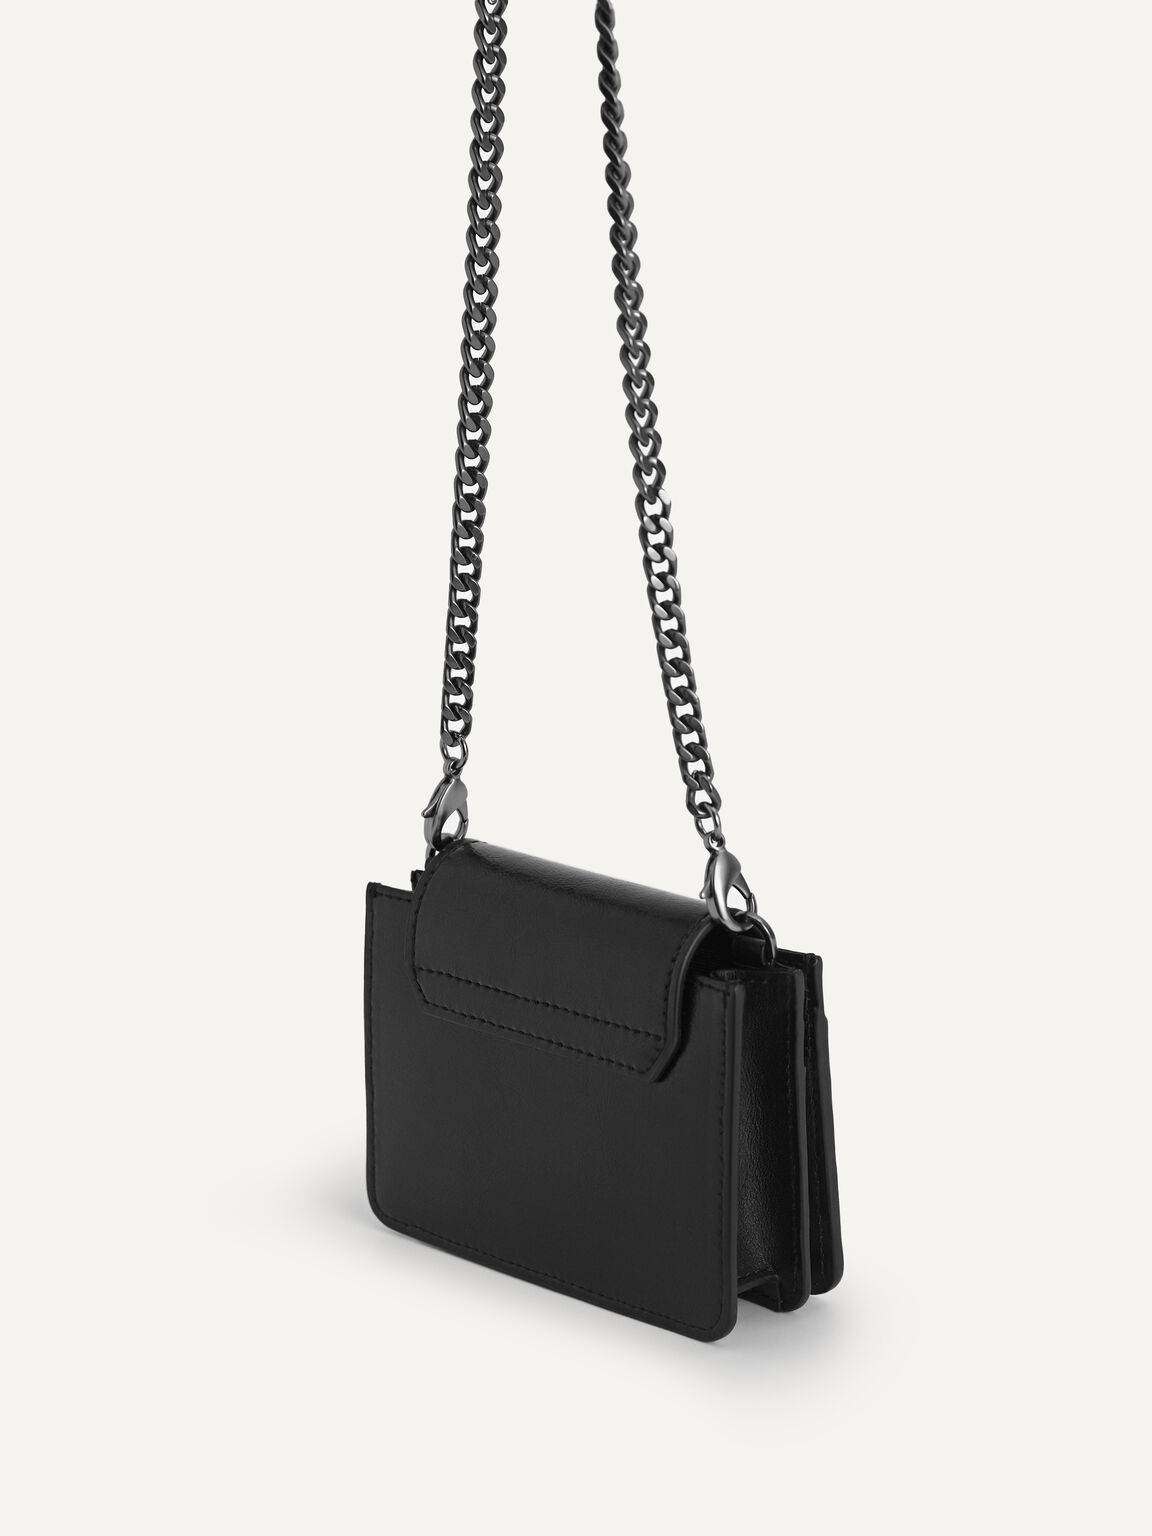 Leather Pouch with Chain Handle, Black, hi-res